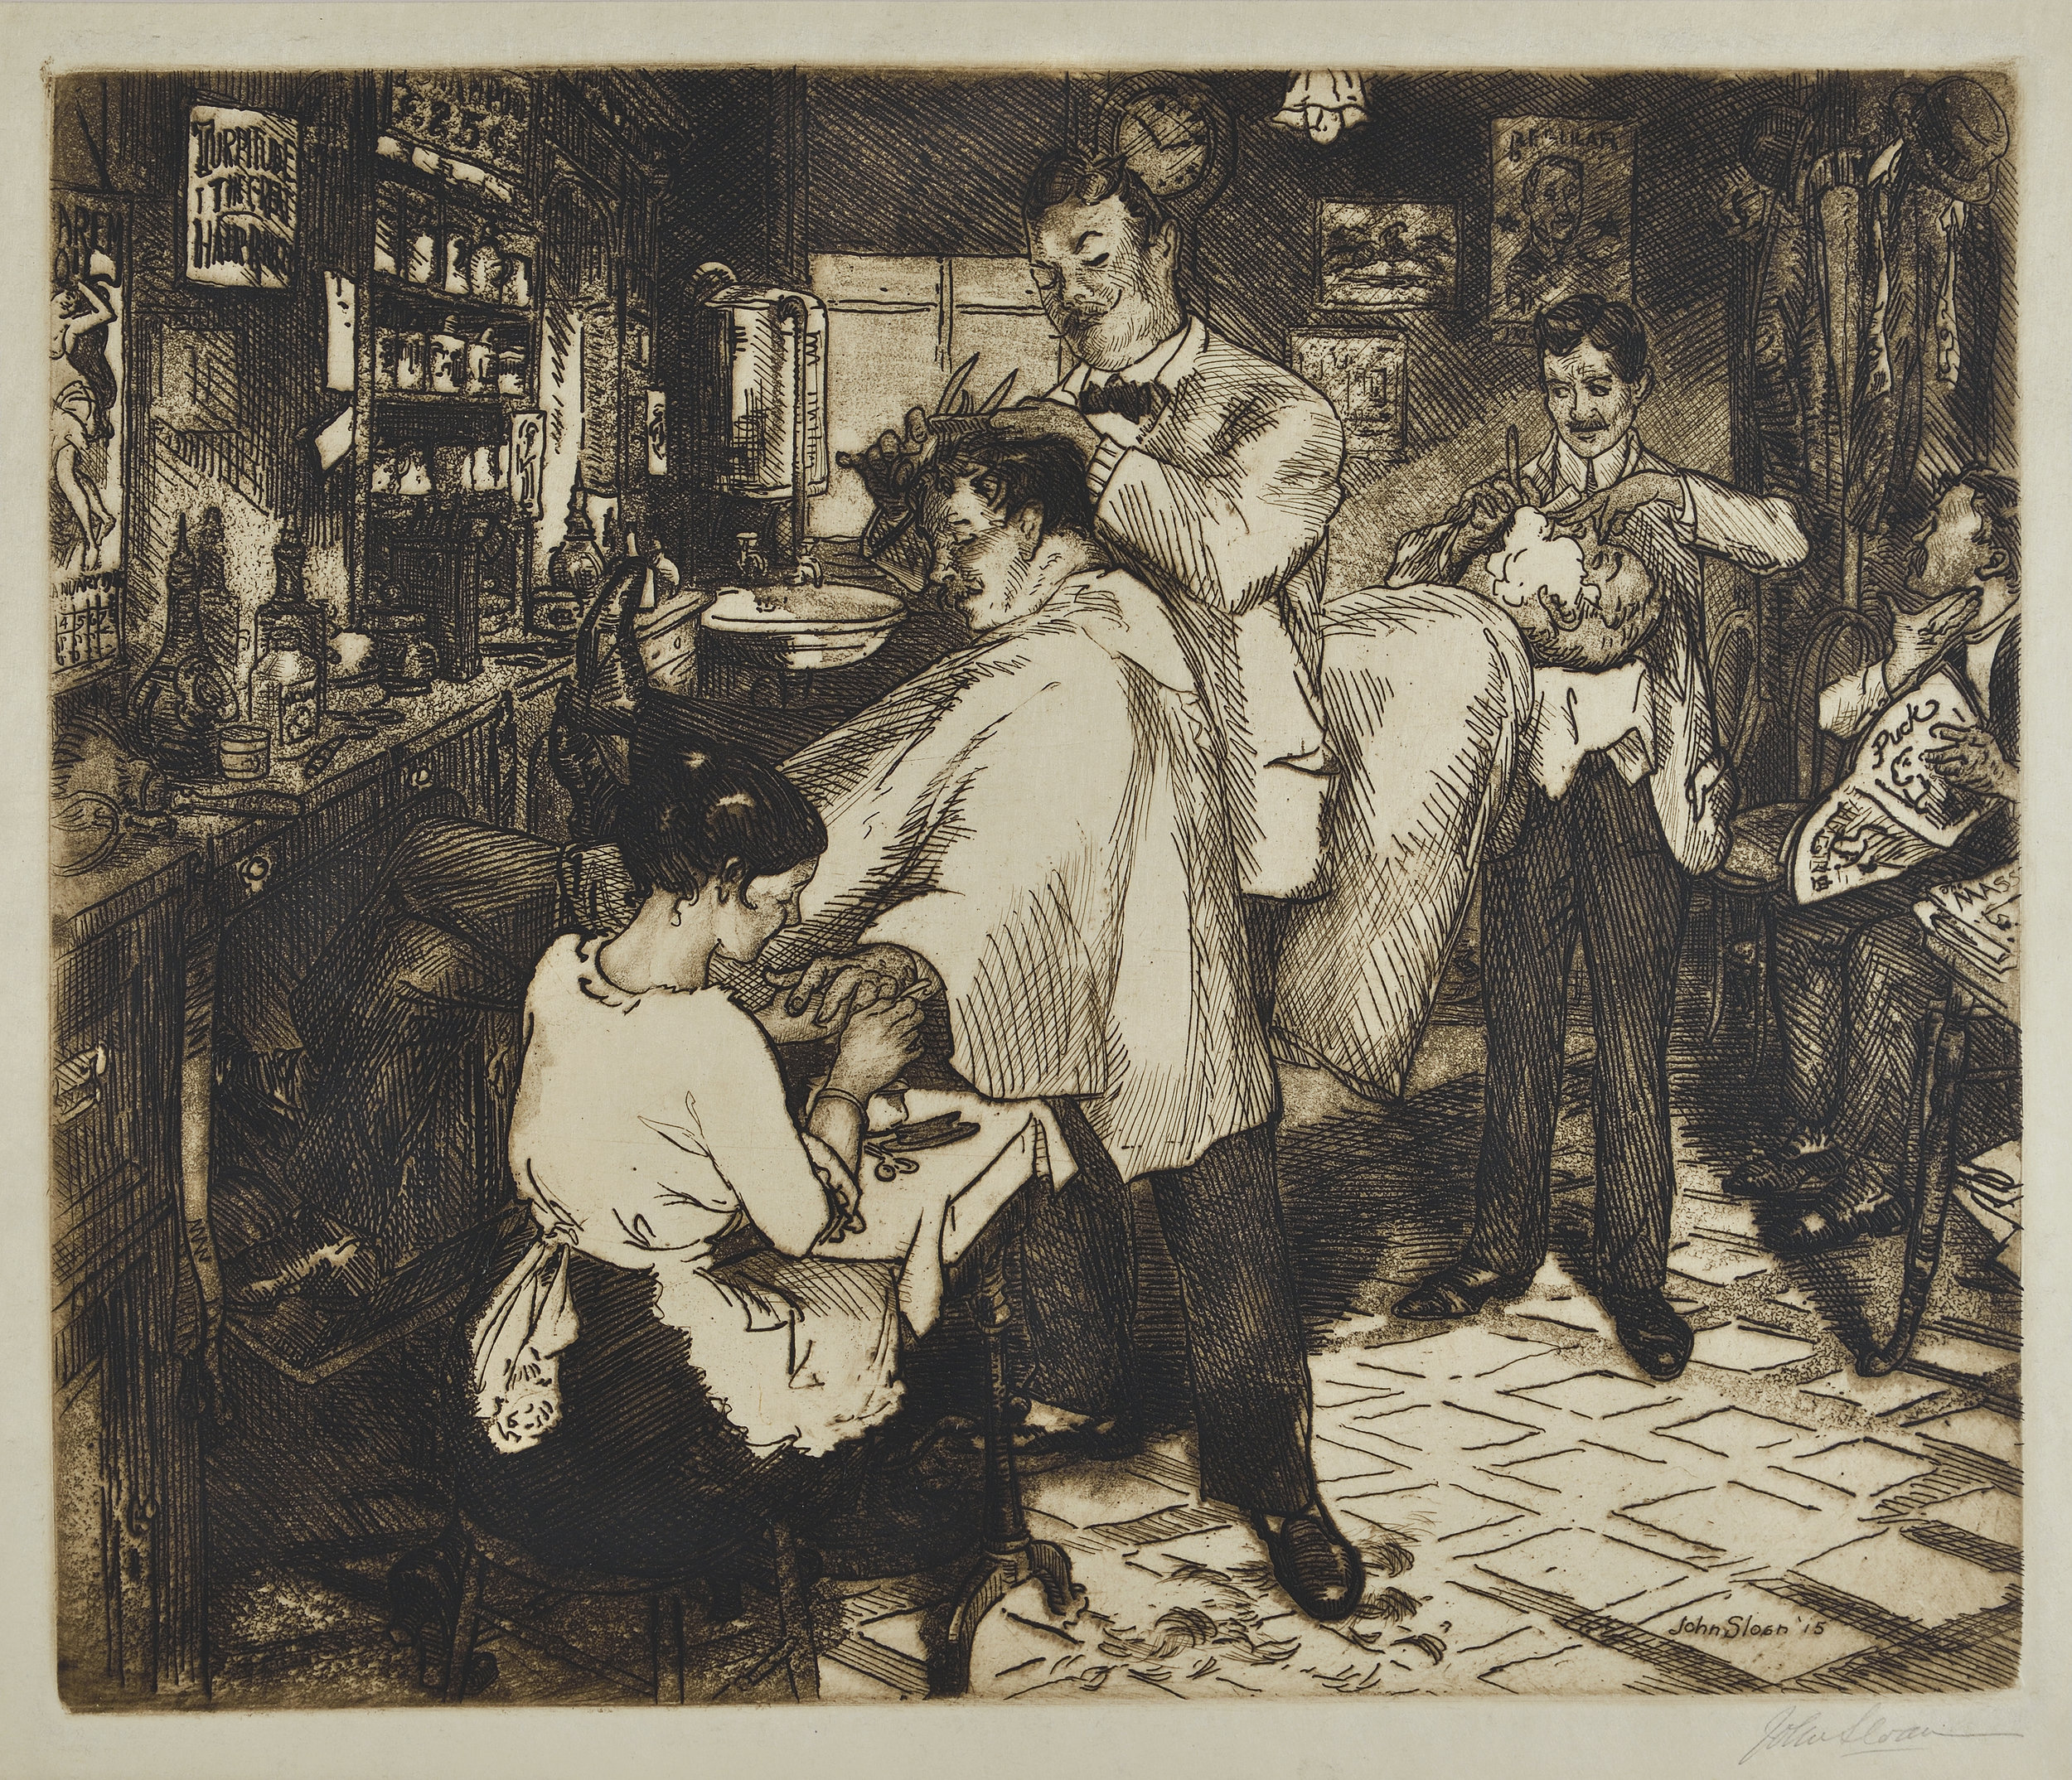 Etching of man getting a haircut at a barbershop and having his nails done. In the background a man is having a shave and a man is waiting for his appointment